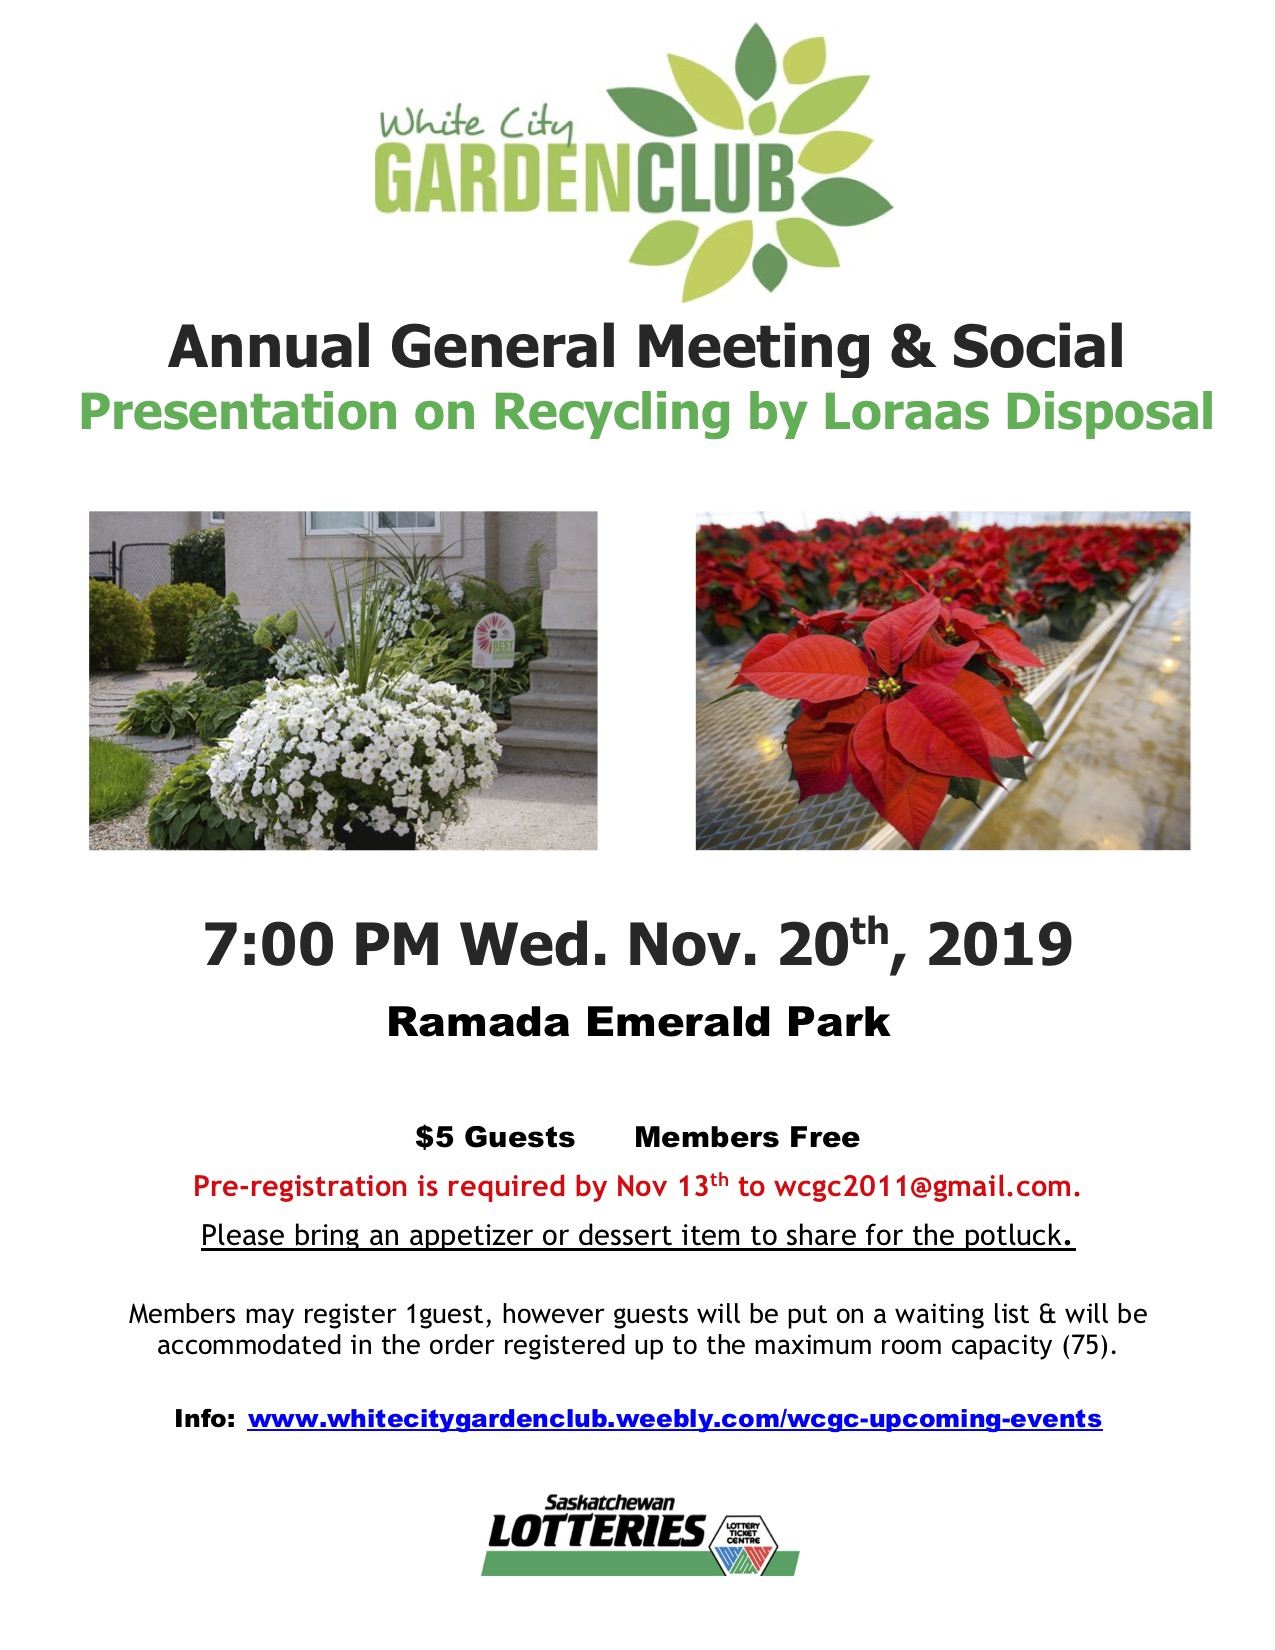 AGM & Social for the White City Garden Club